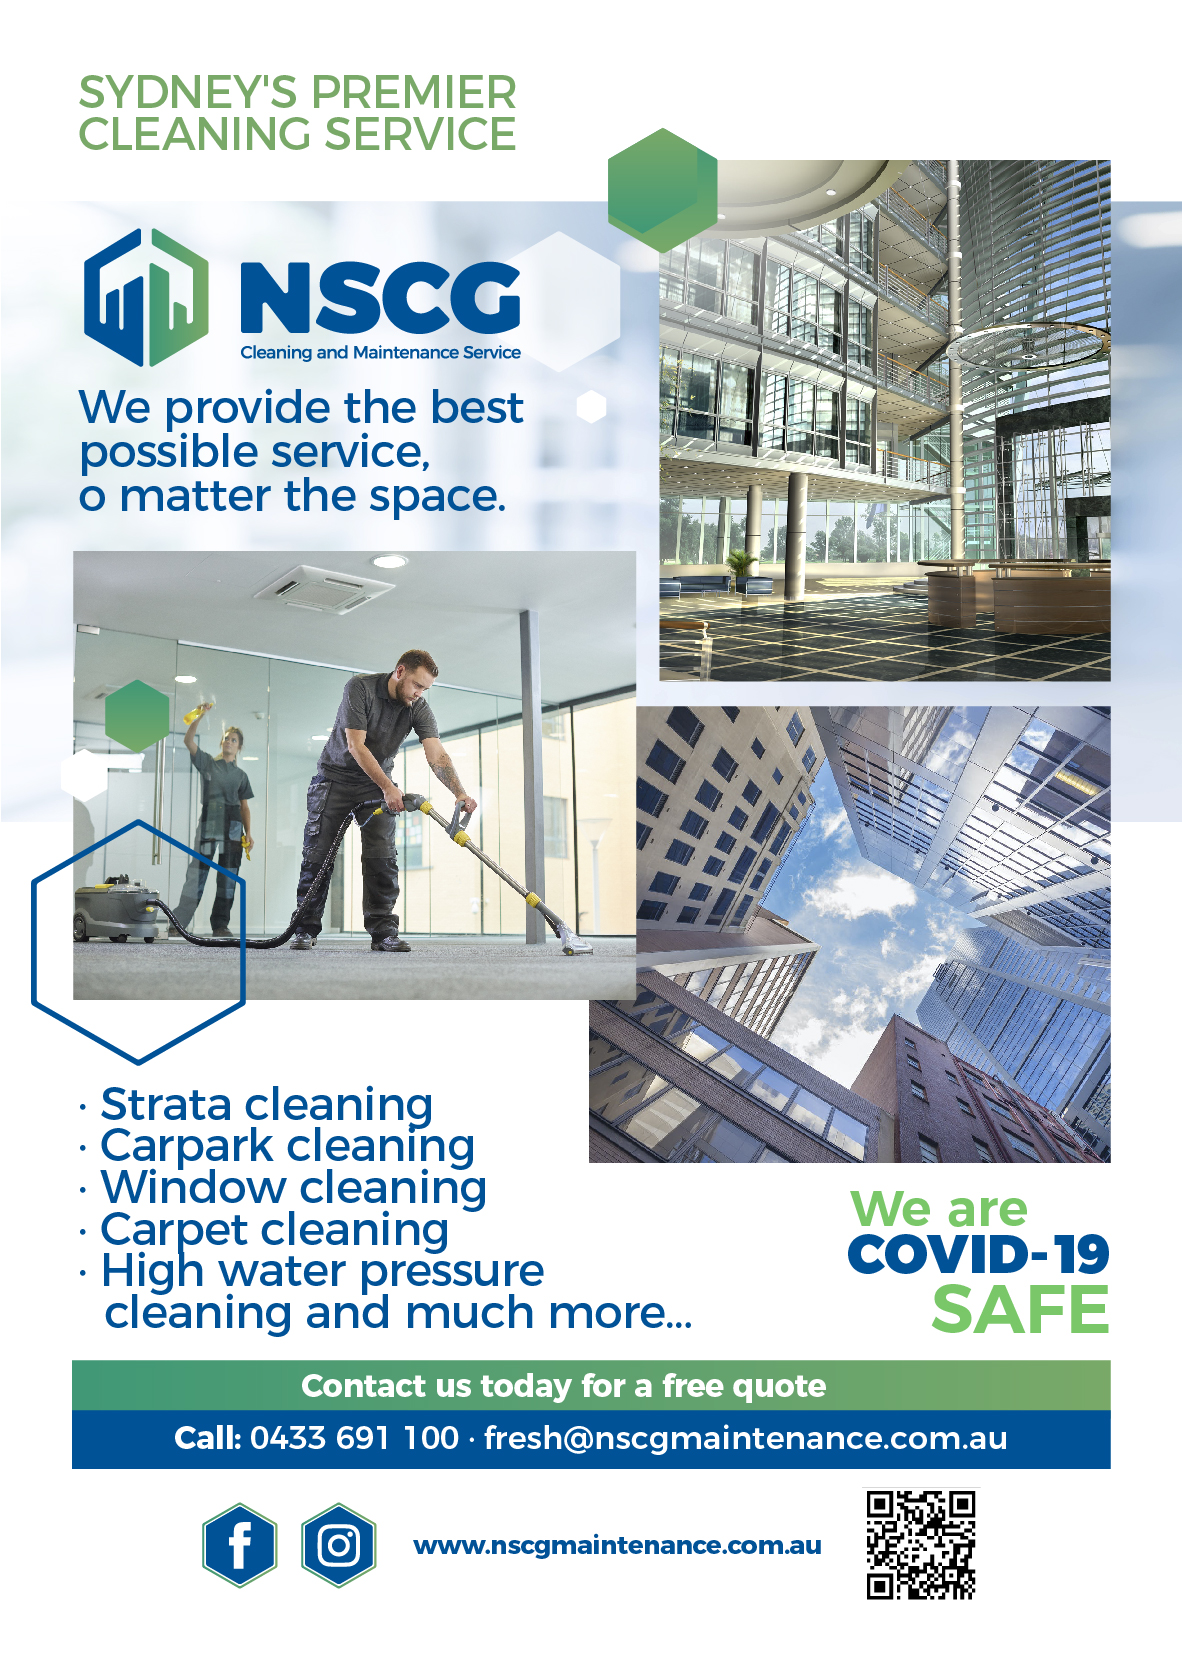 NSCG Cleaning & Maintenance Services